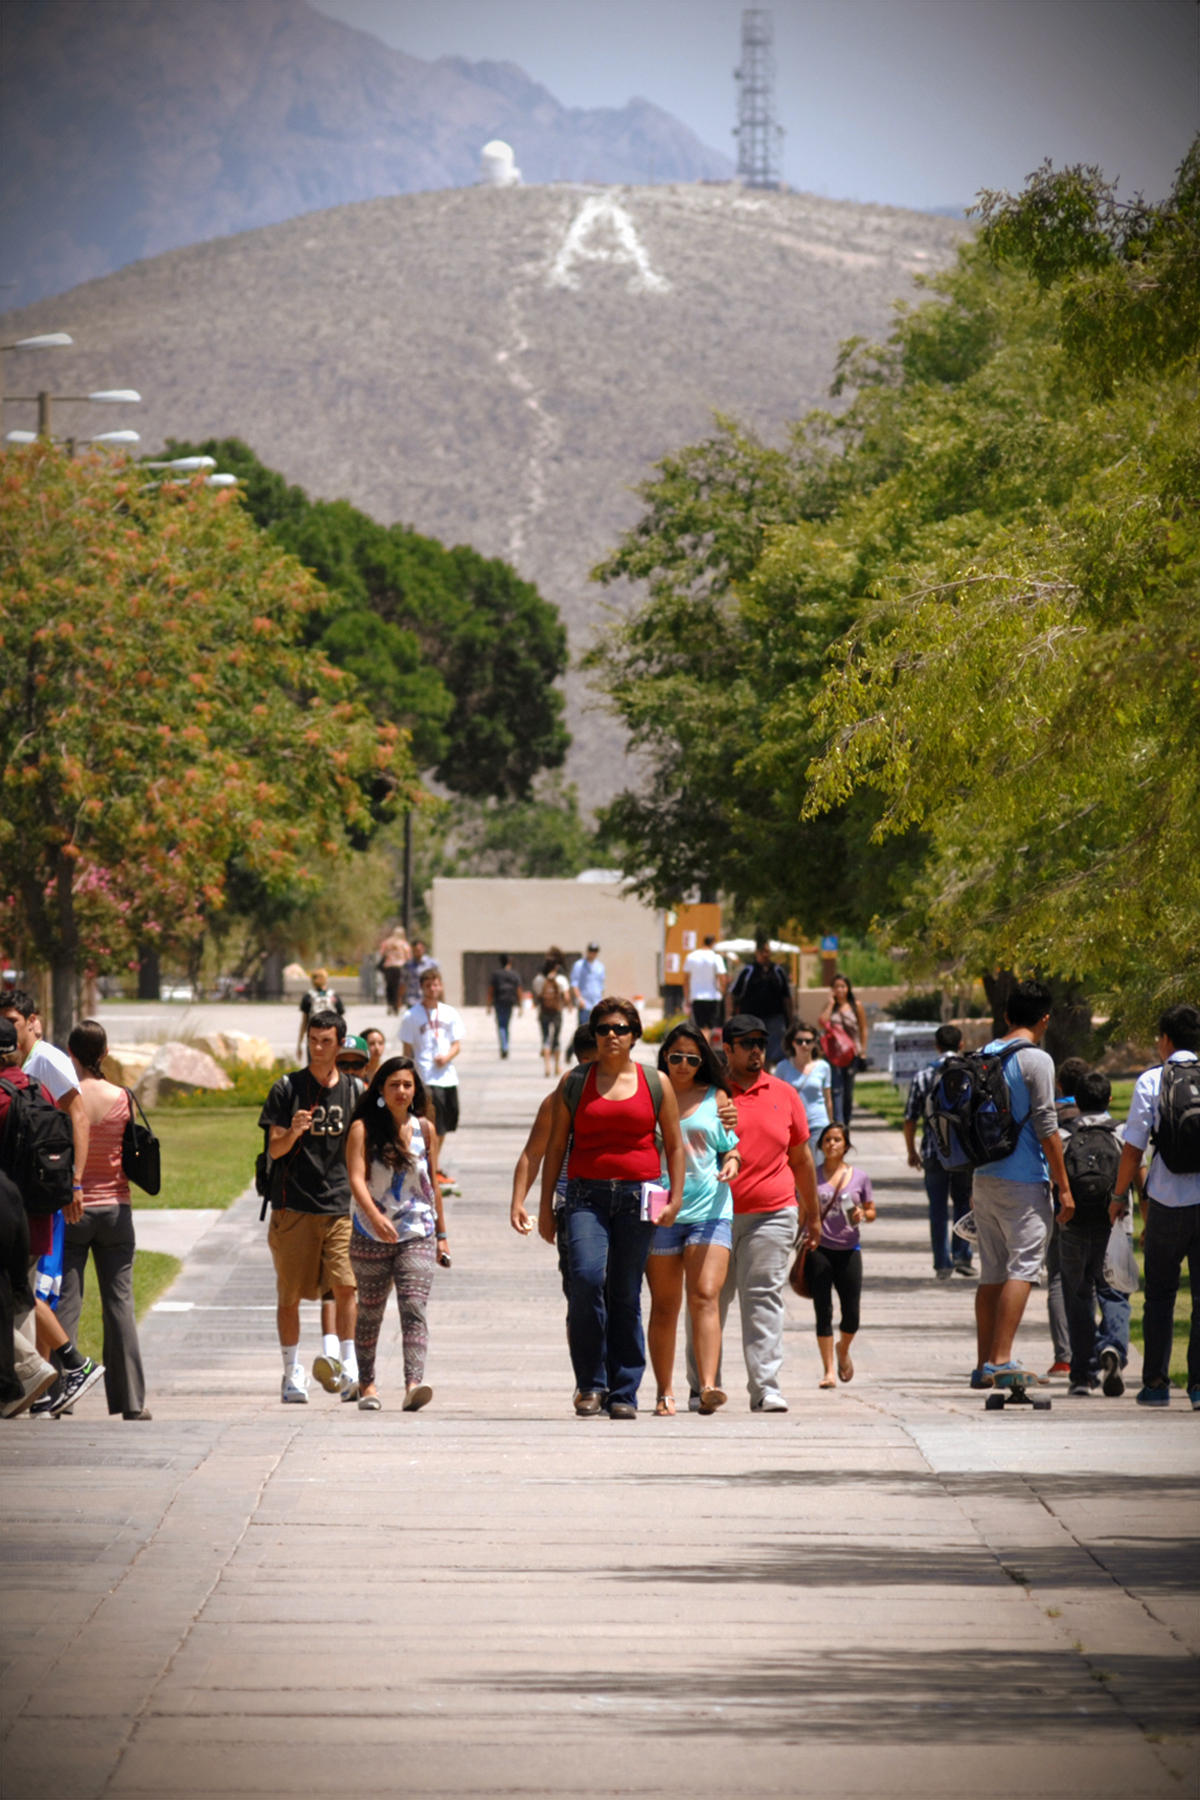 NMSU eliminated 727 jobs at Las Cruces campus since 2011 | KRWG